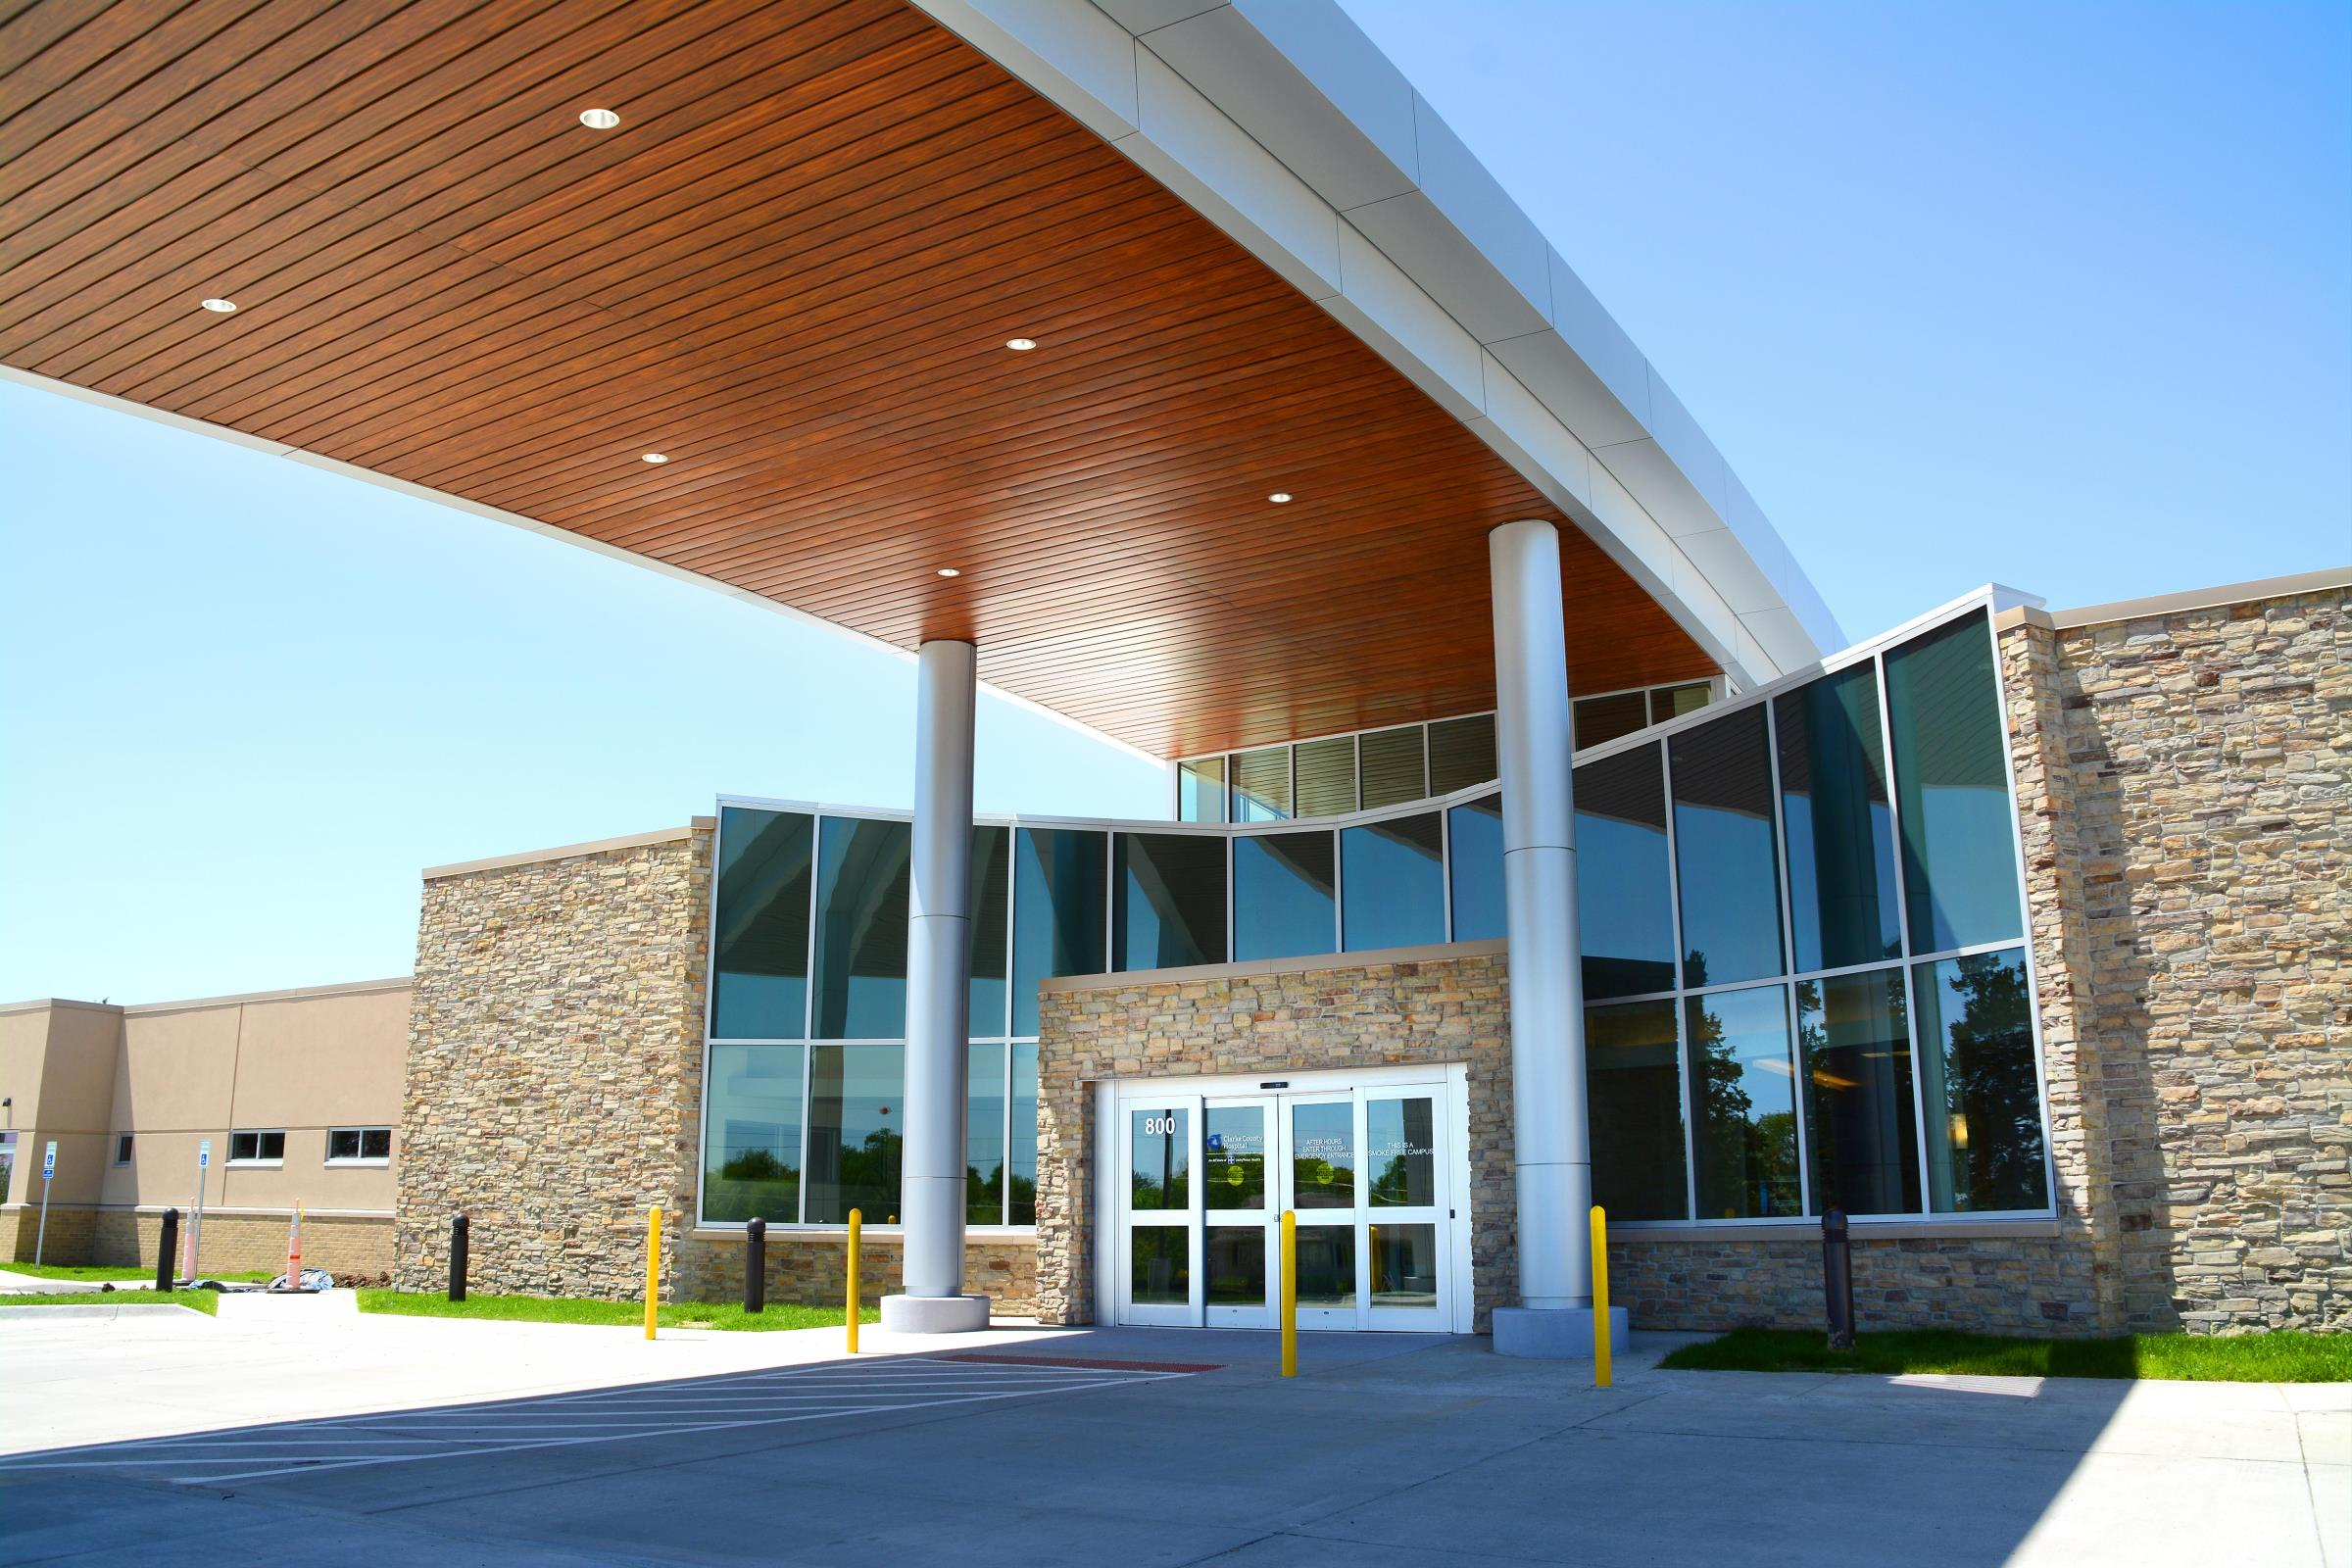 Clarke County Hospital Osceola, Iowa 63,000 sf Hospital Expansion & Renovation